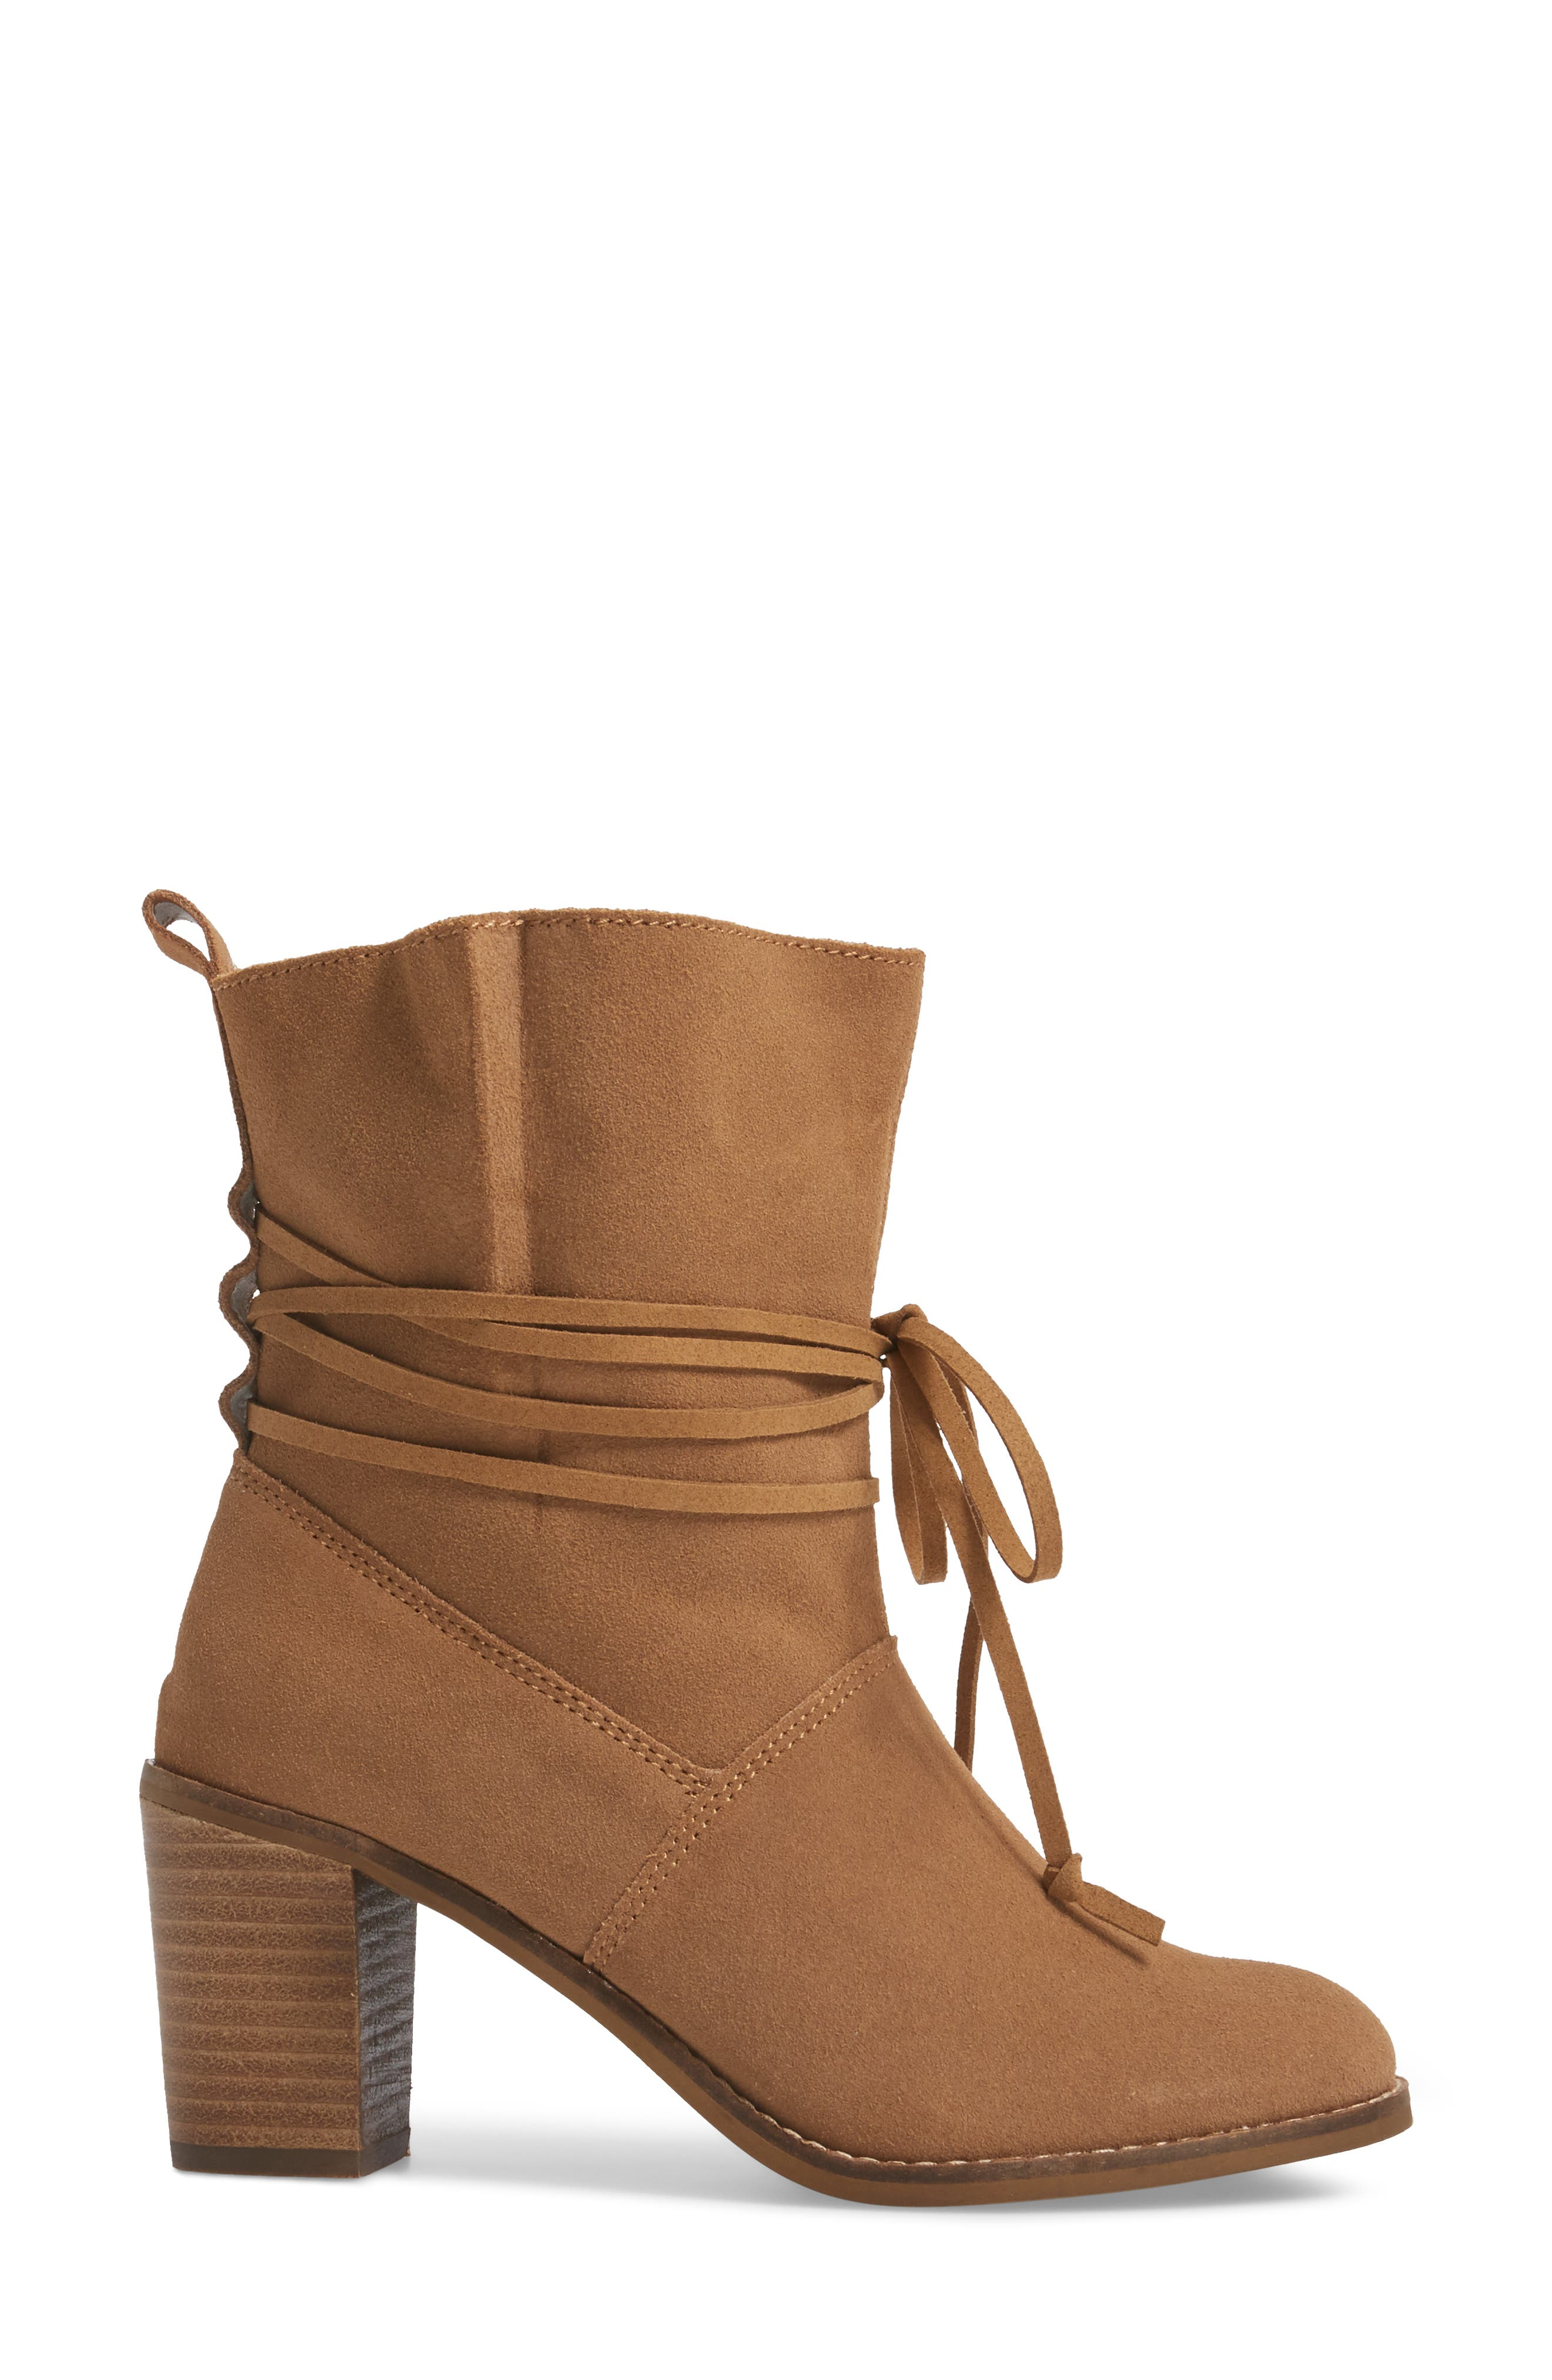 Mila Bootie,                             Alternate thumbnail 3, color,                             Toffee Suede